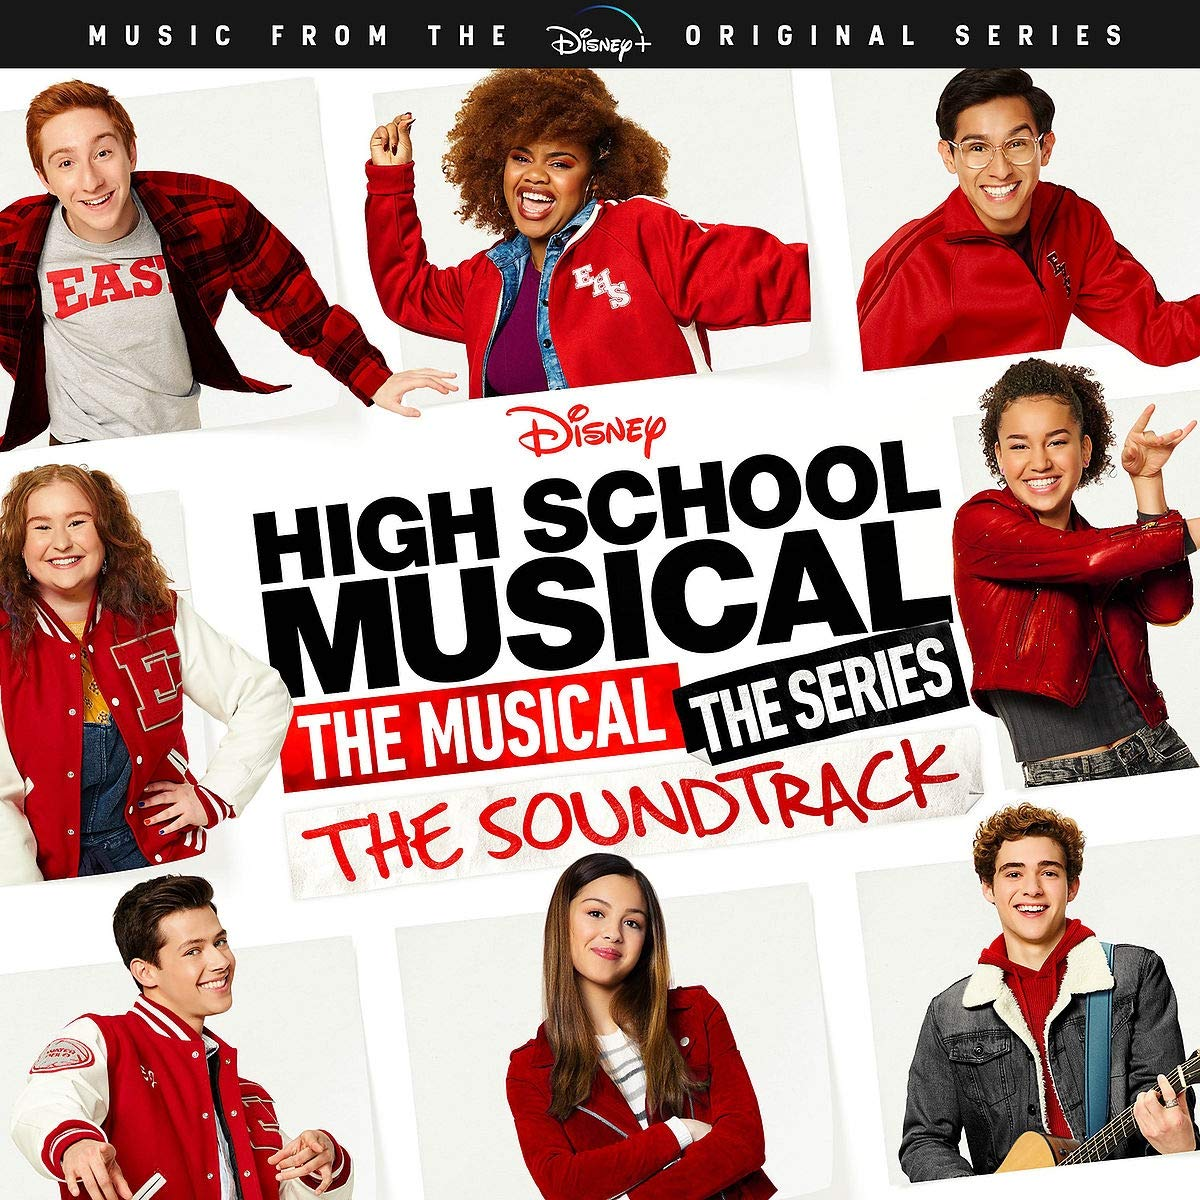 Amazon.com: High School Musical: The Musical: The Series: Music